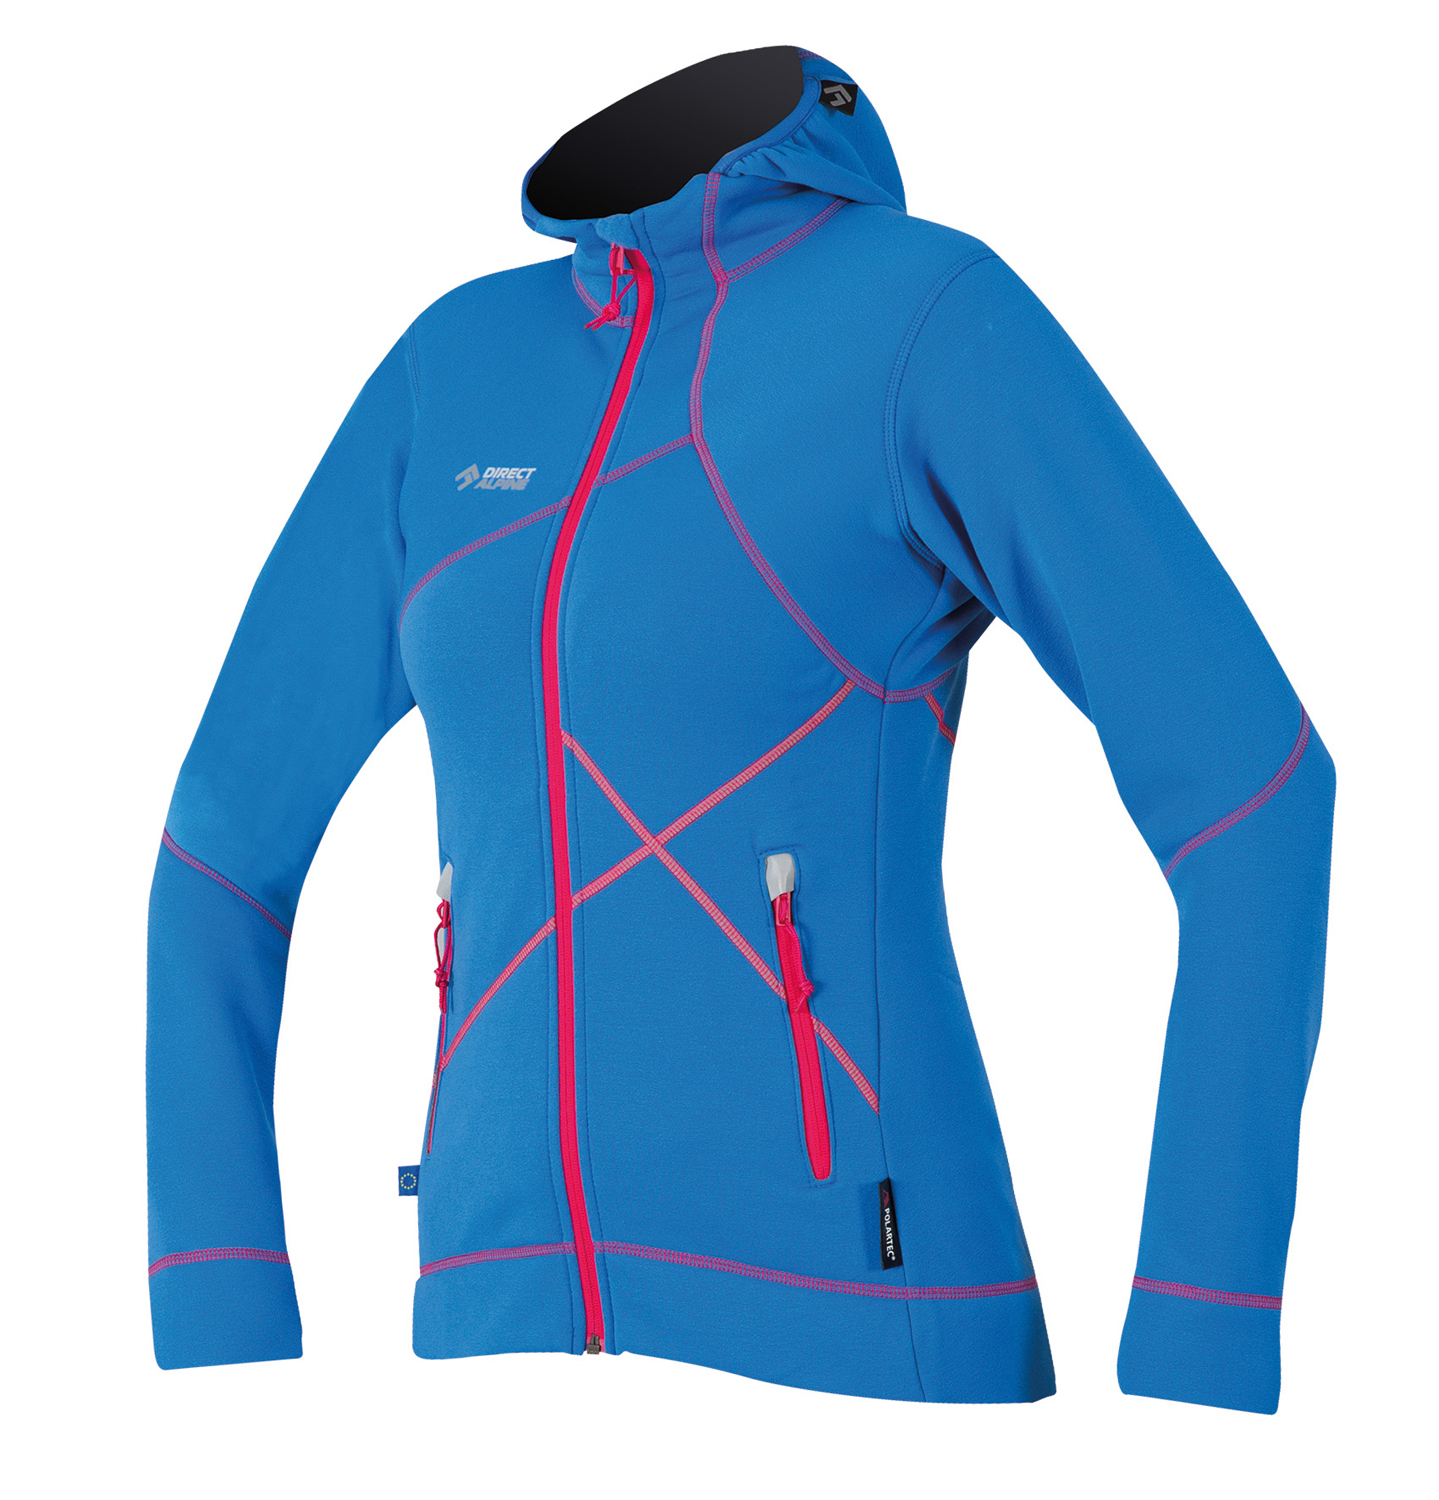 a193646065873 An innovative ladies sports jacket for increased warmth and comfort.  Suitable as a second layer or lightly insulated top layer during spring or  fall.